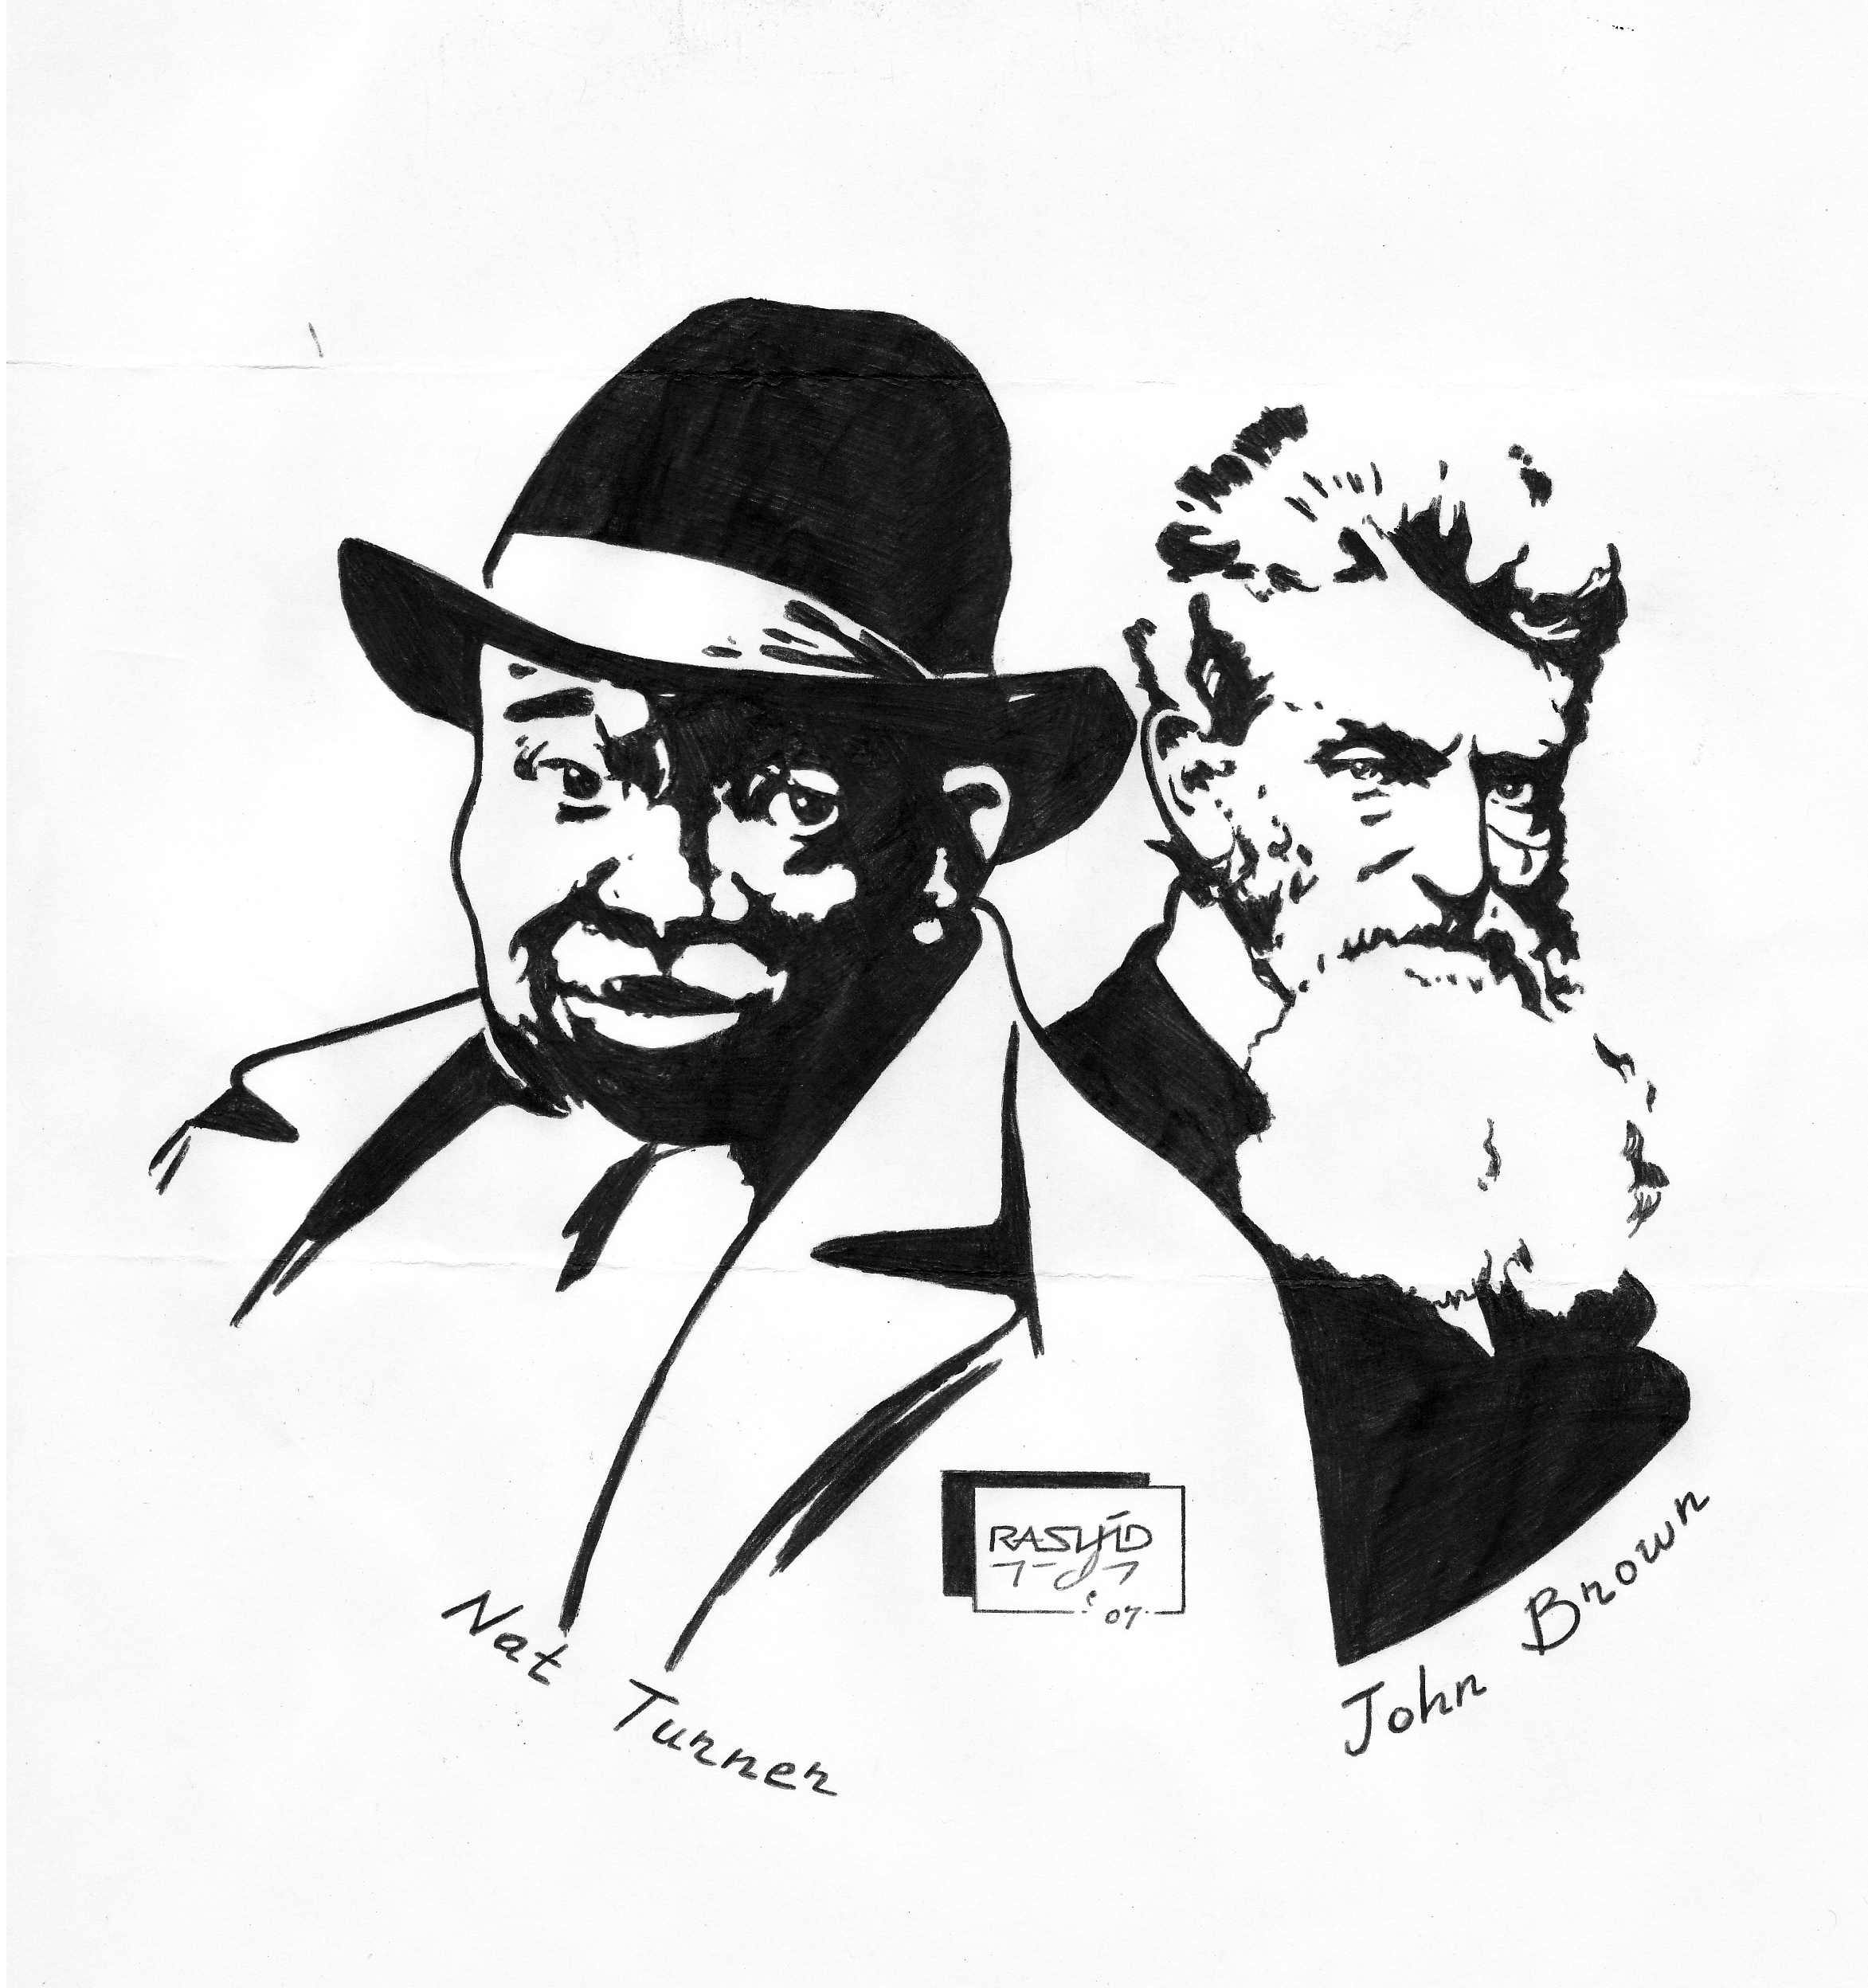 Turner and Brown